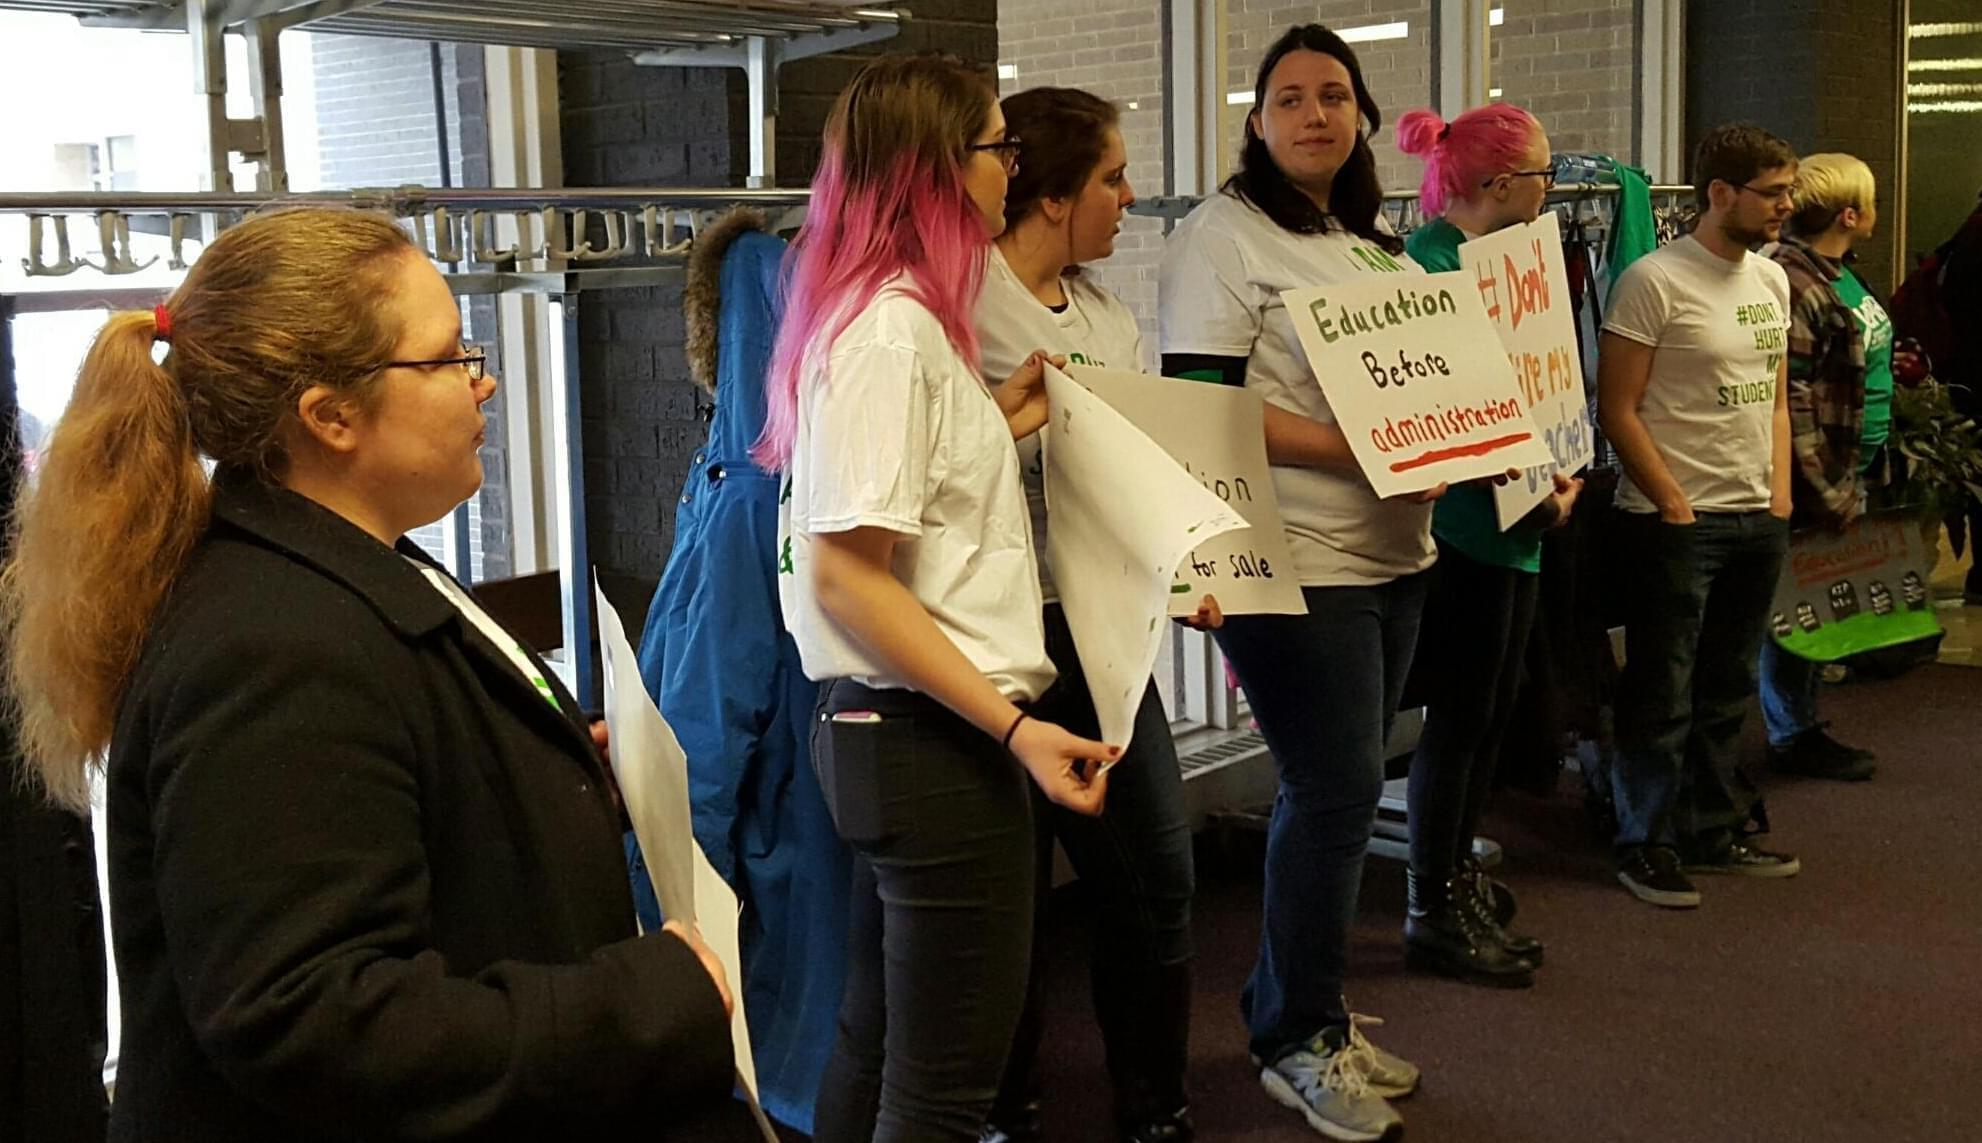 Western Illinois University students demonstrate for more higher education funding.